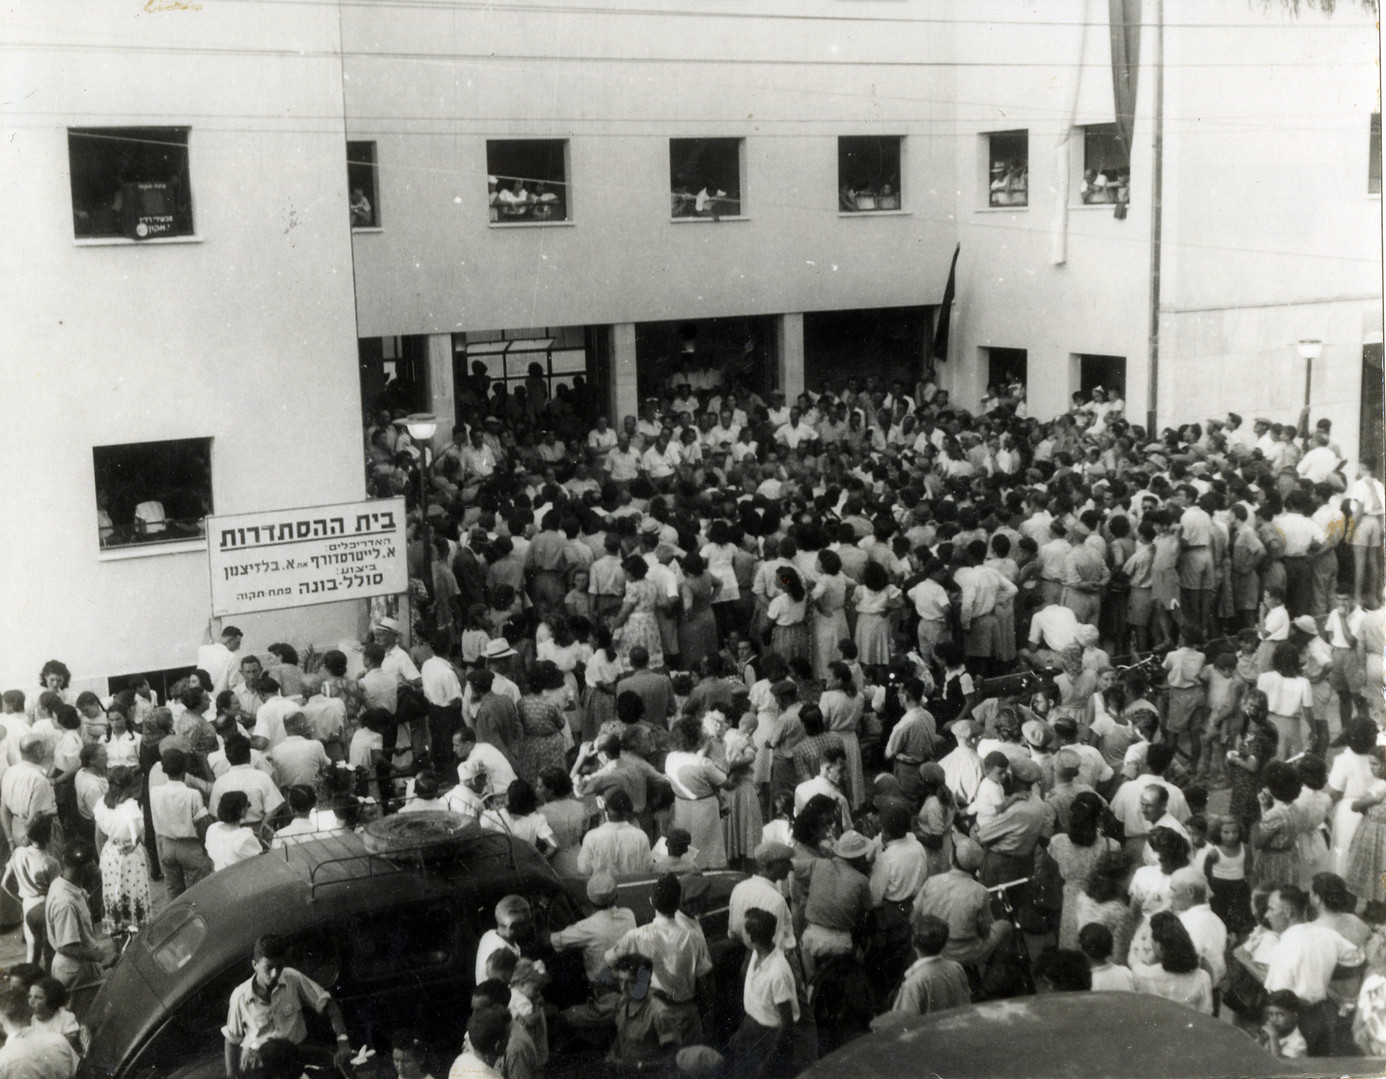 The Histadrut House Opening Ceremony